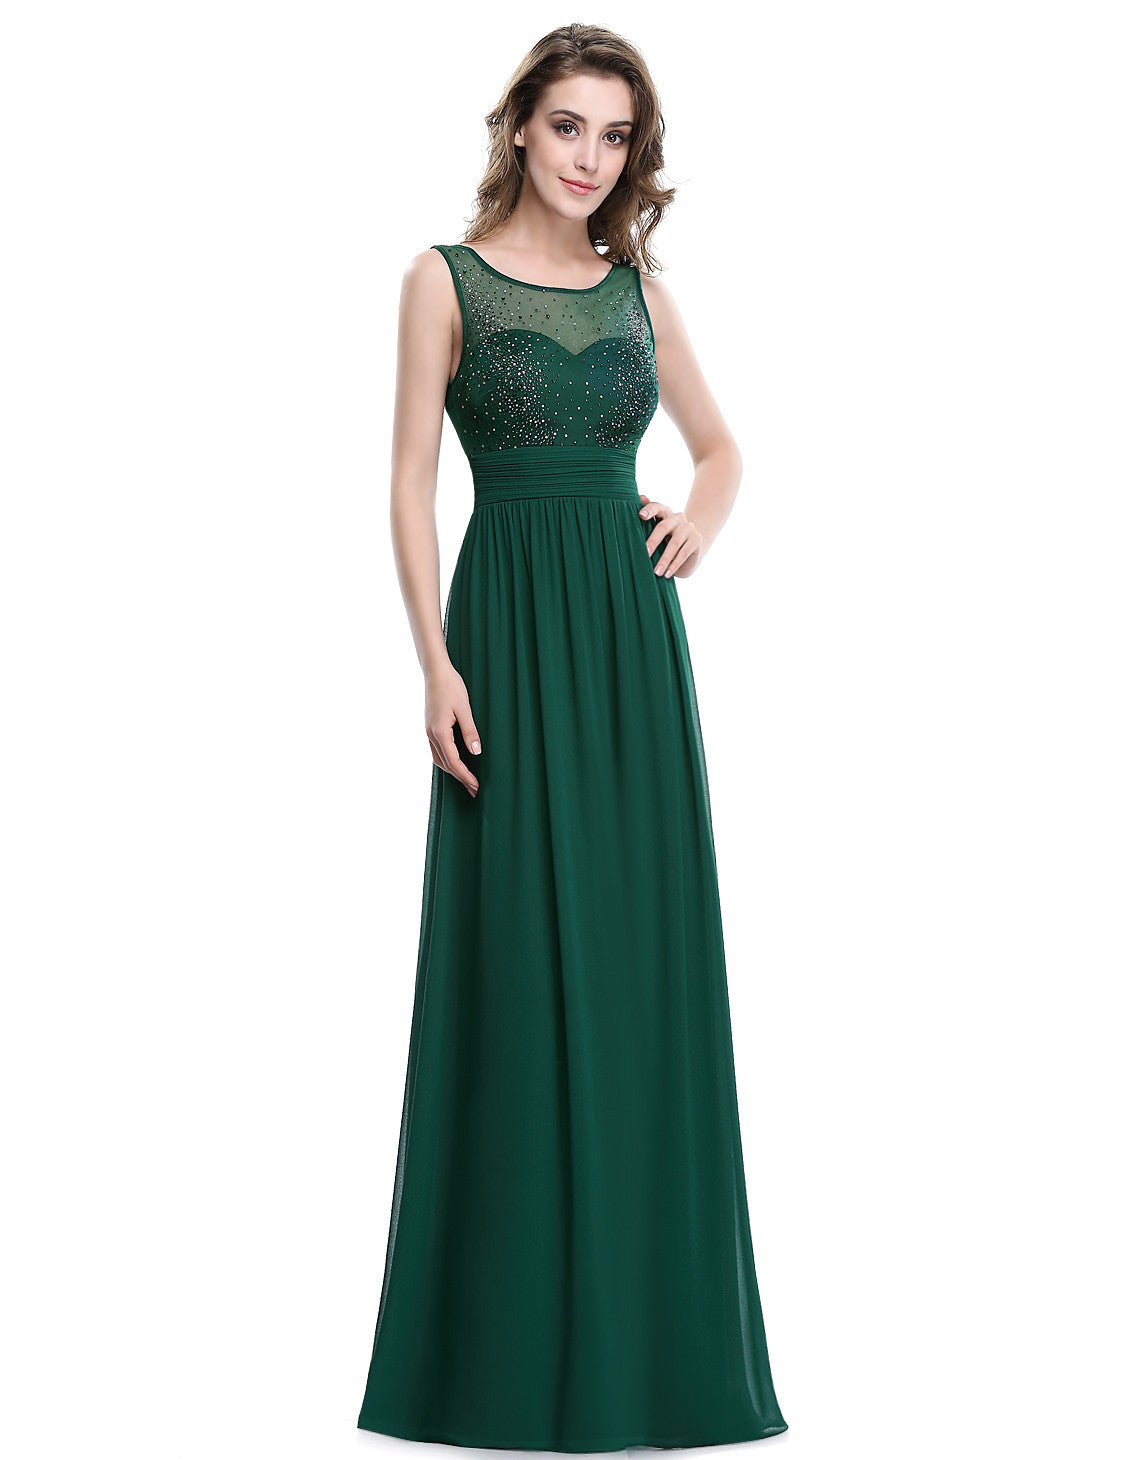 Obeige Women's Elegant Green Sleeveless Long Evening Dress